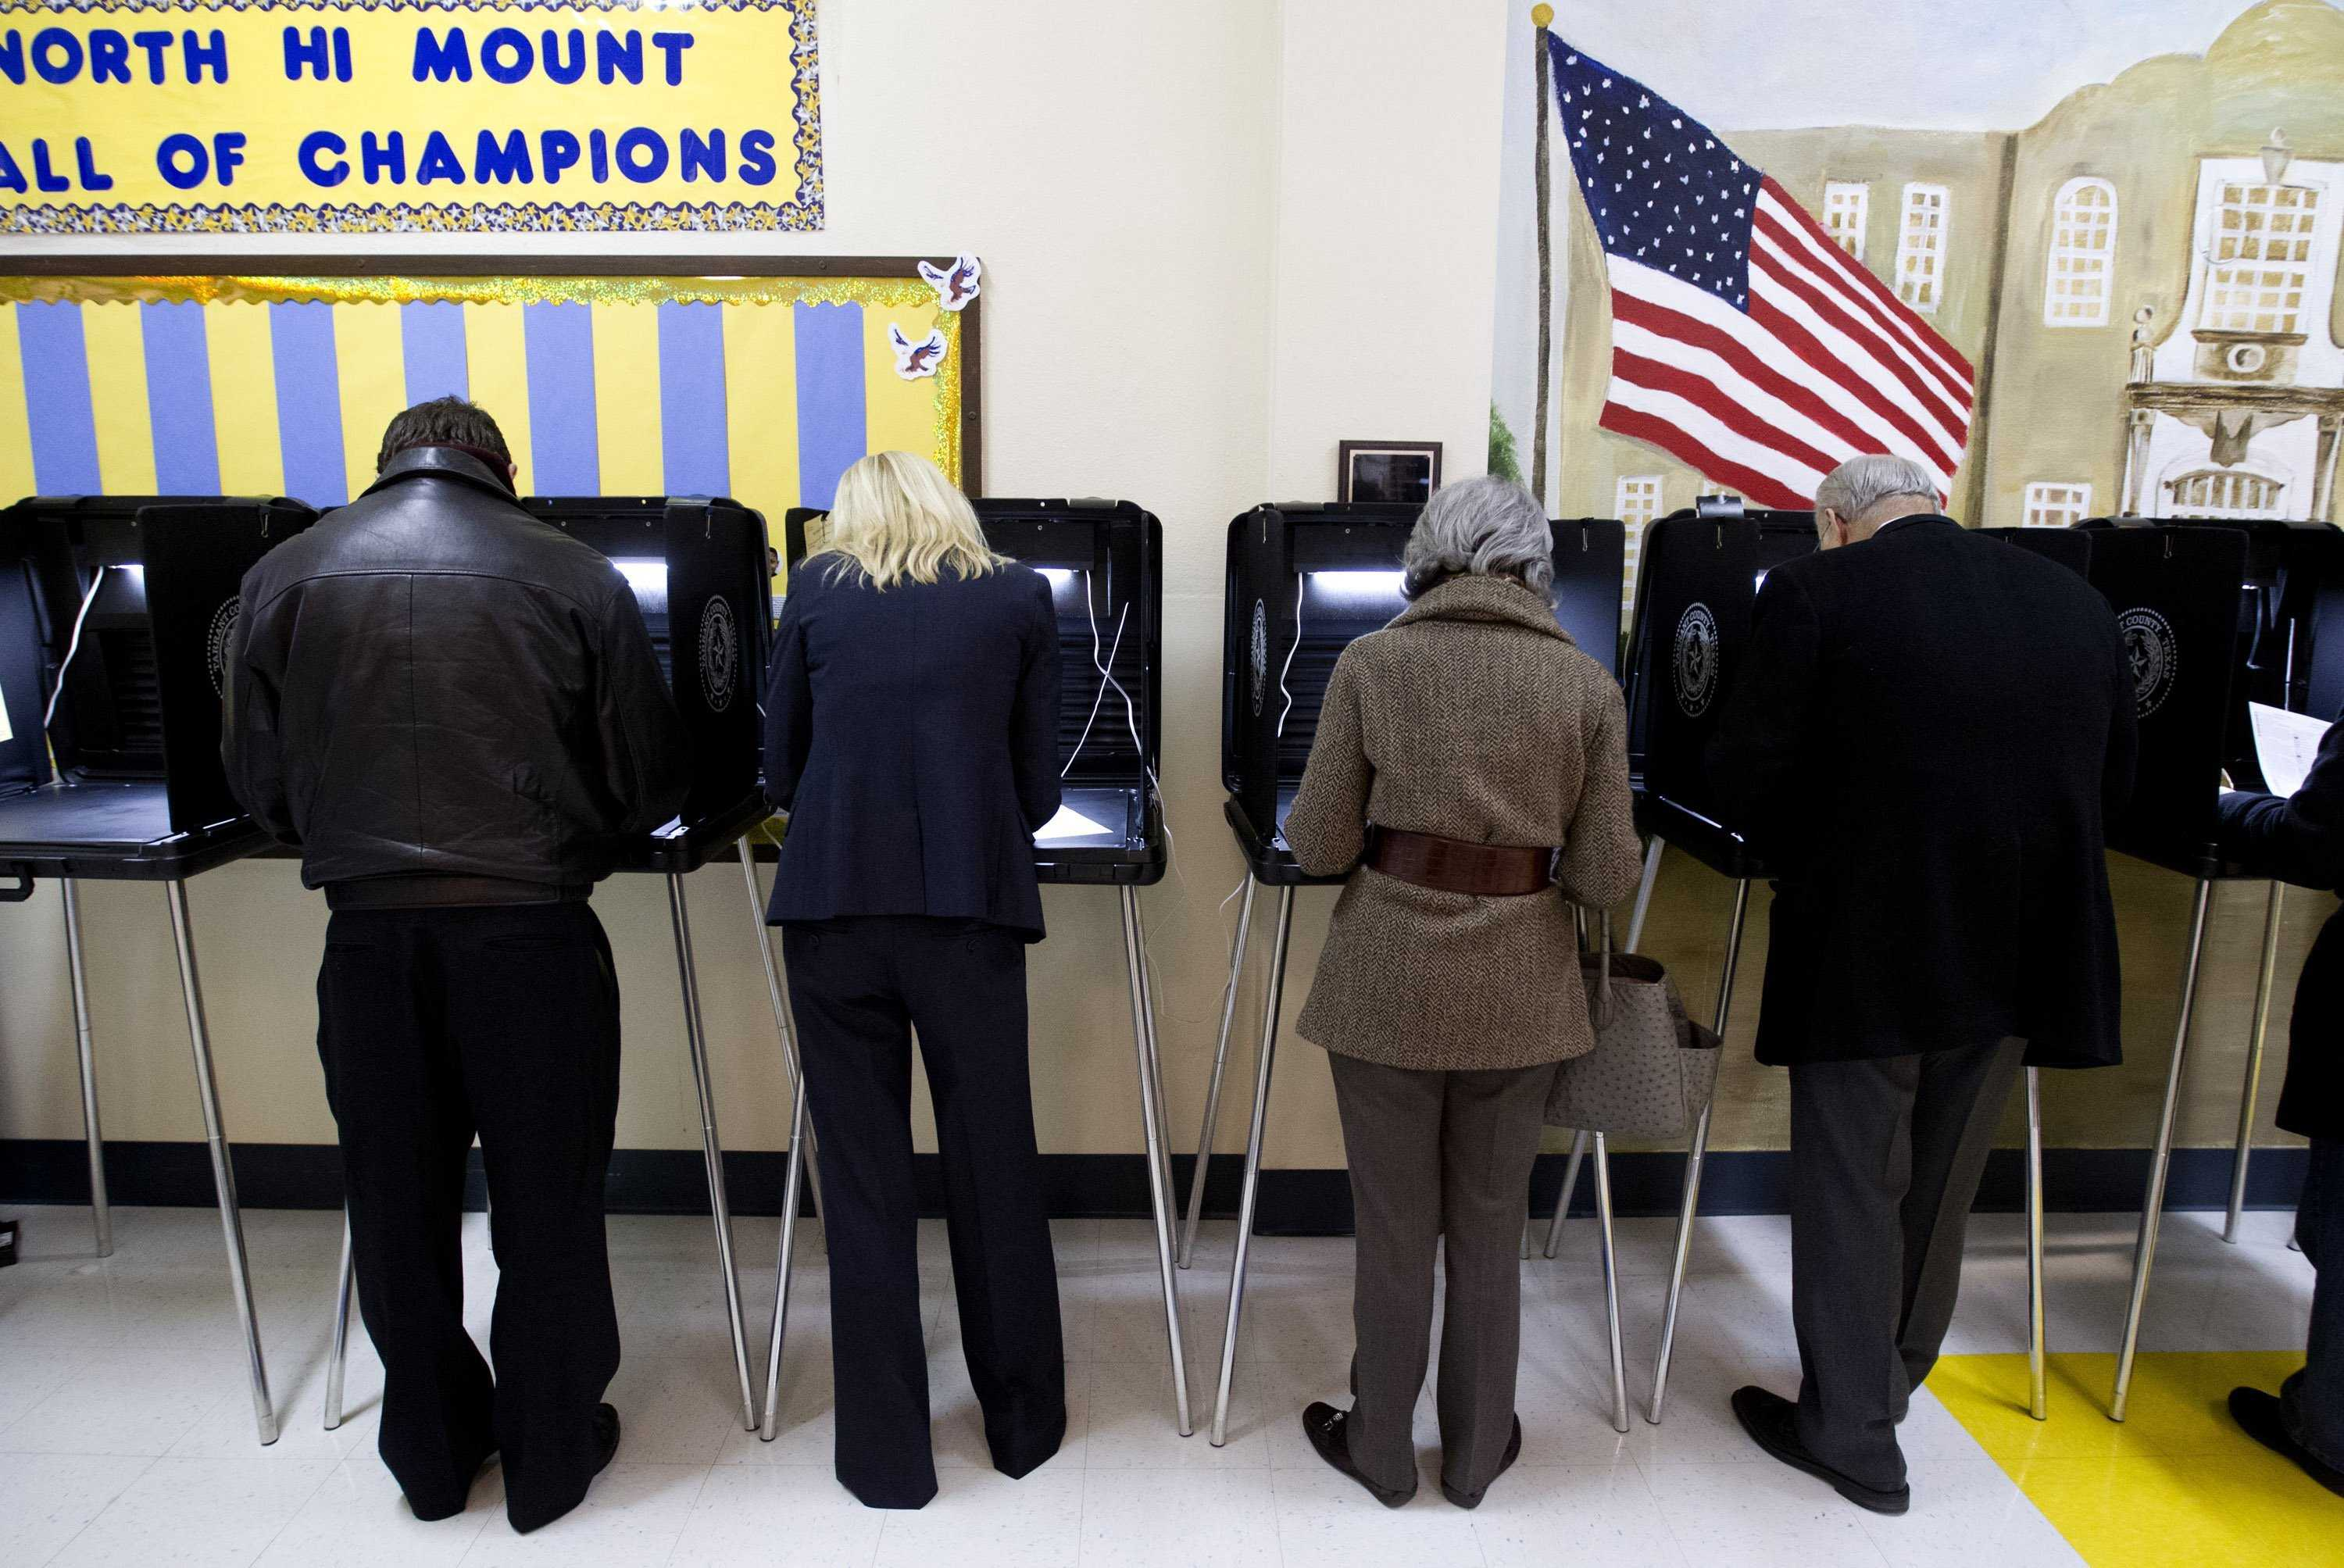 Texas residents particpate in primary election at local elementary school Joyce Marshall/Fort Worth Star Telegram/MCT)